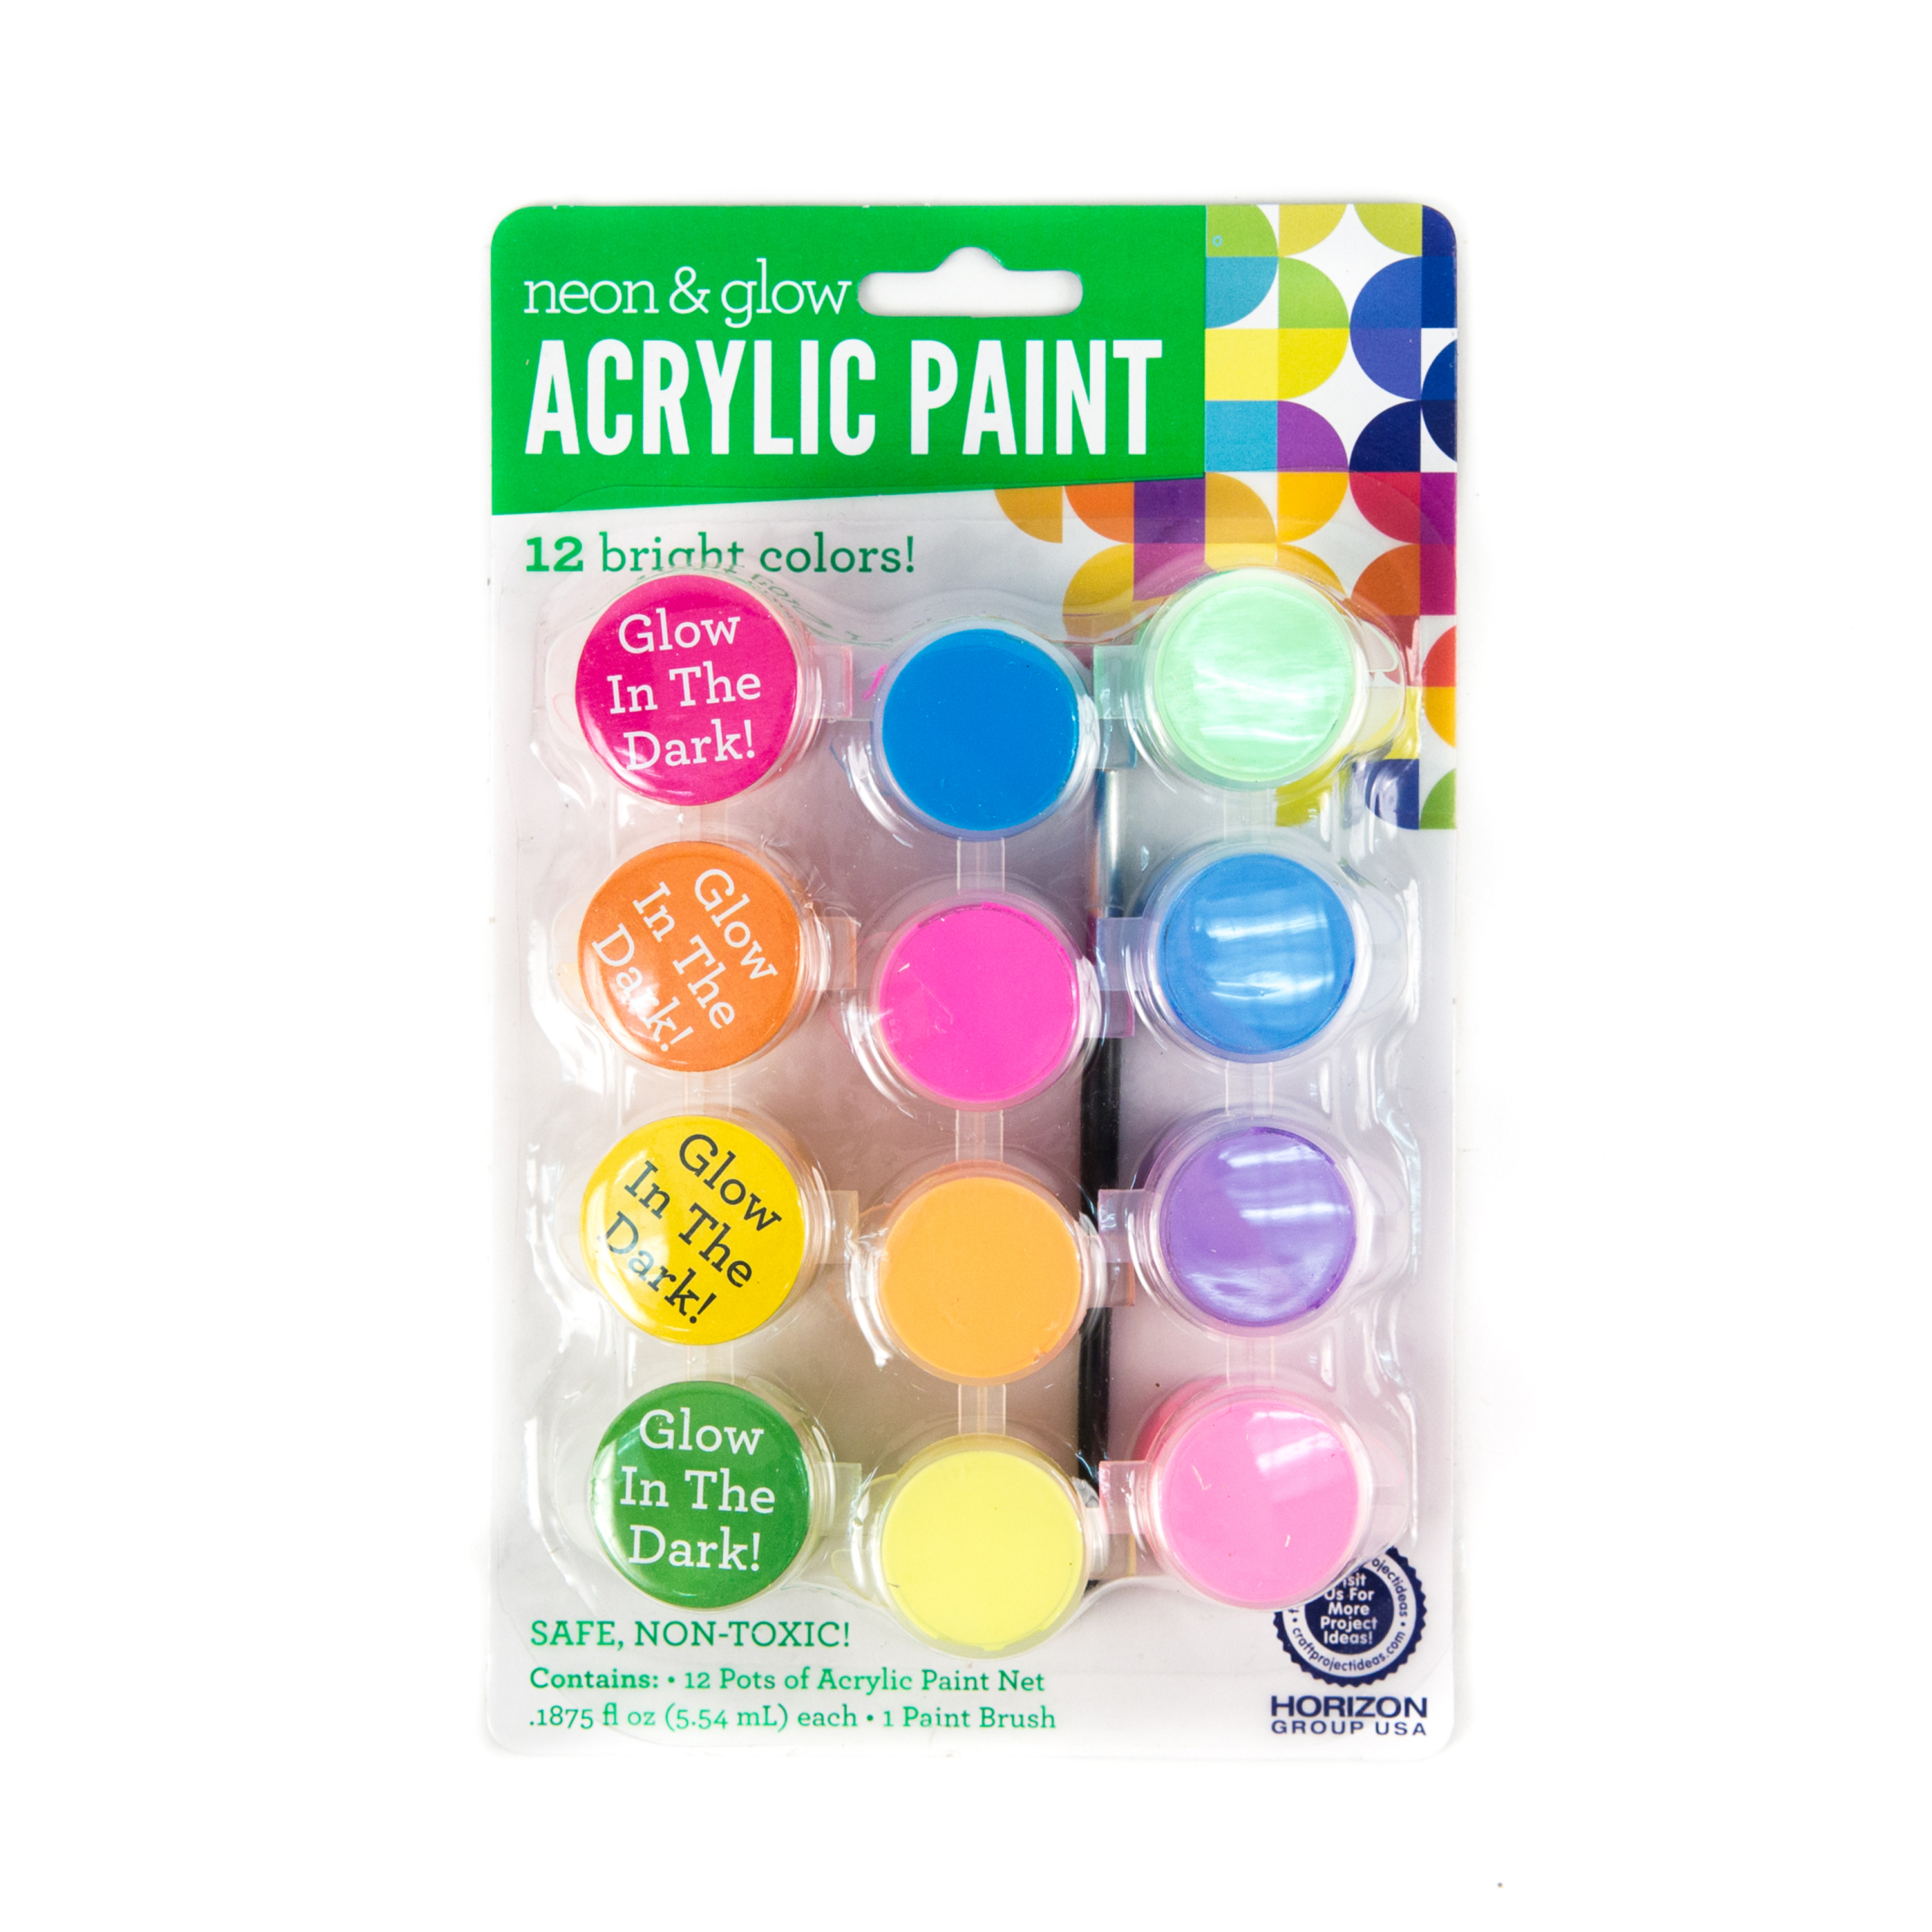 Acrylic Glow-In-the-Dark and Neon Paint, 12 Pots by Horizon Group USA